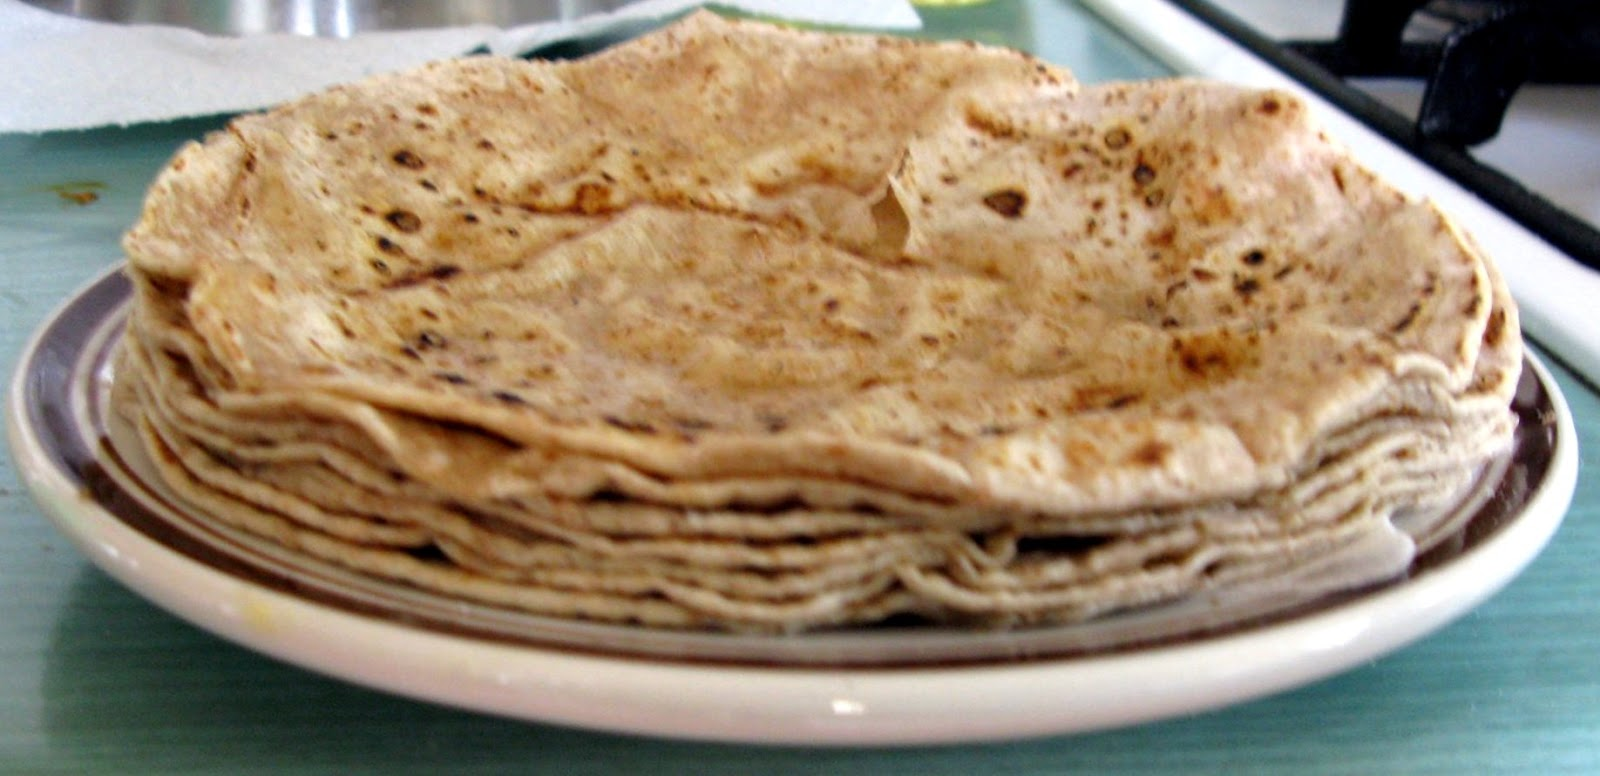 Maani / Roti / Chapatti / Indian Flat Bread